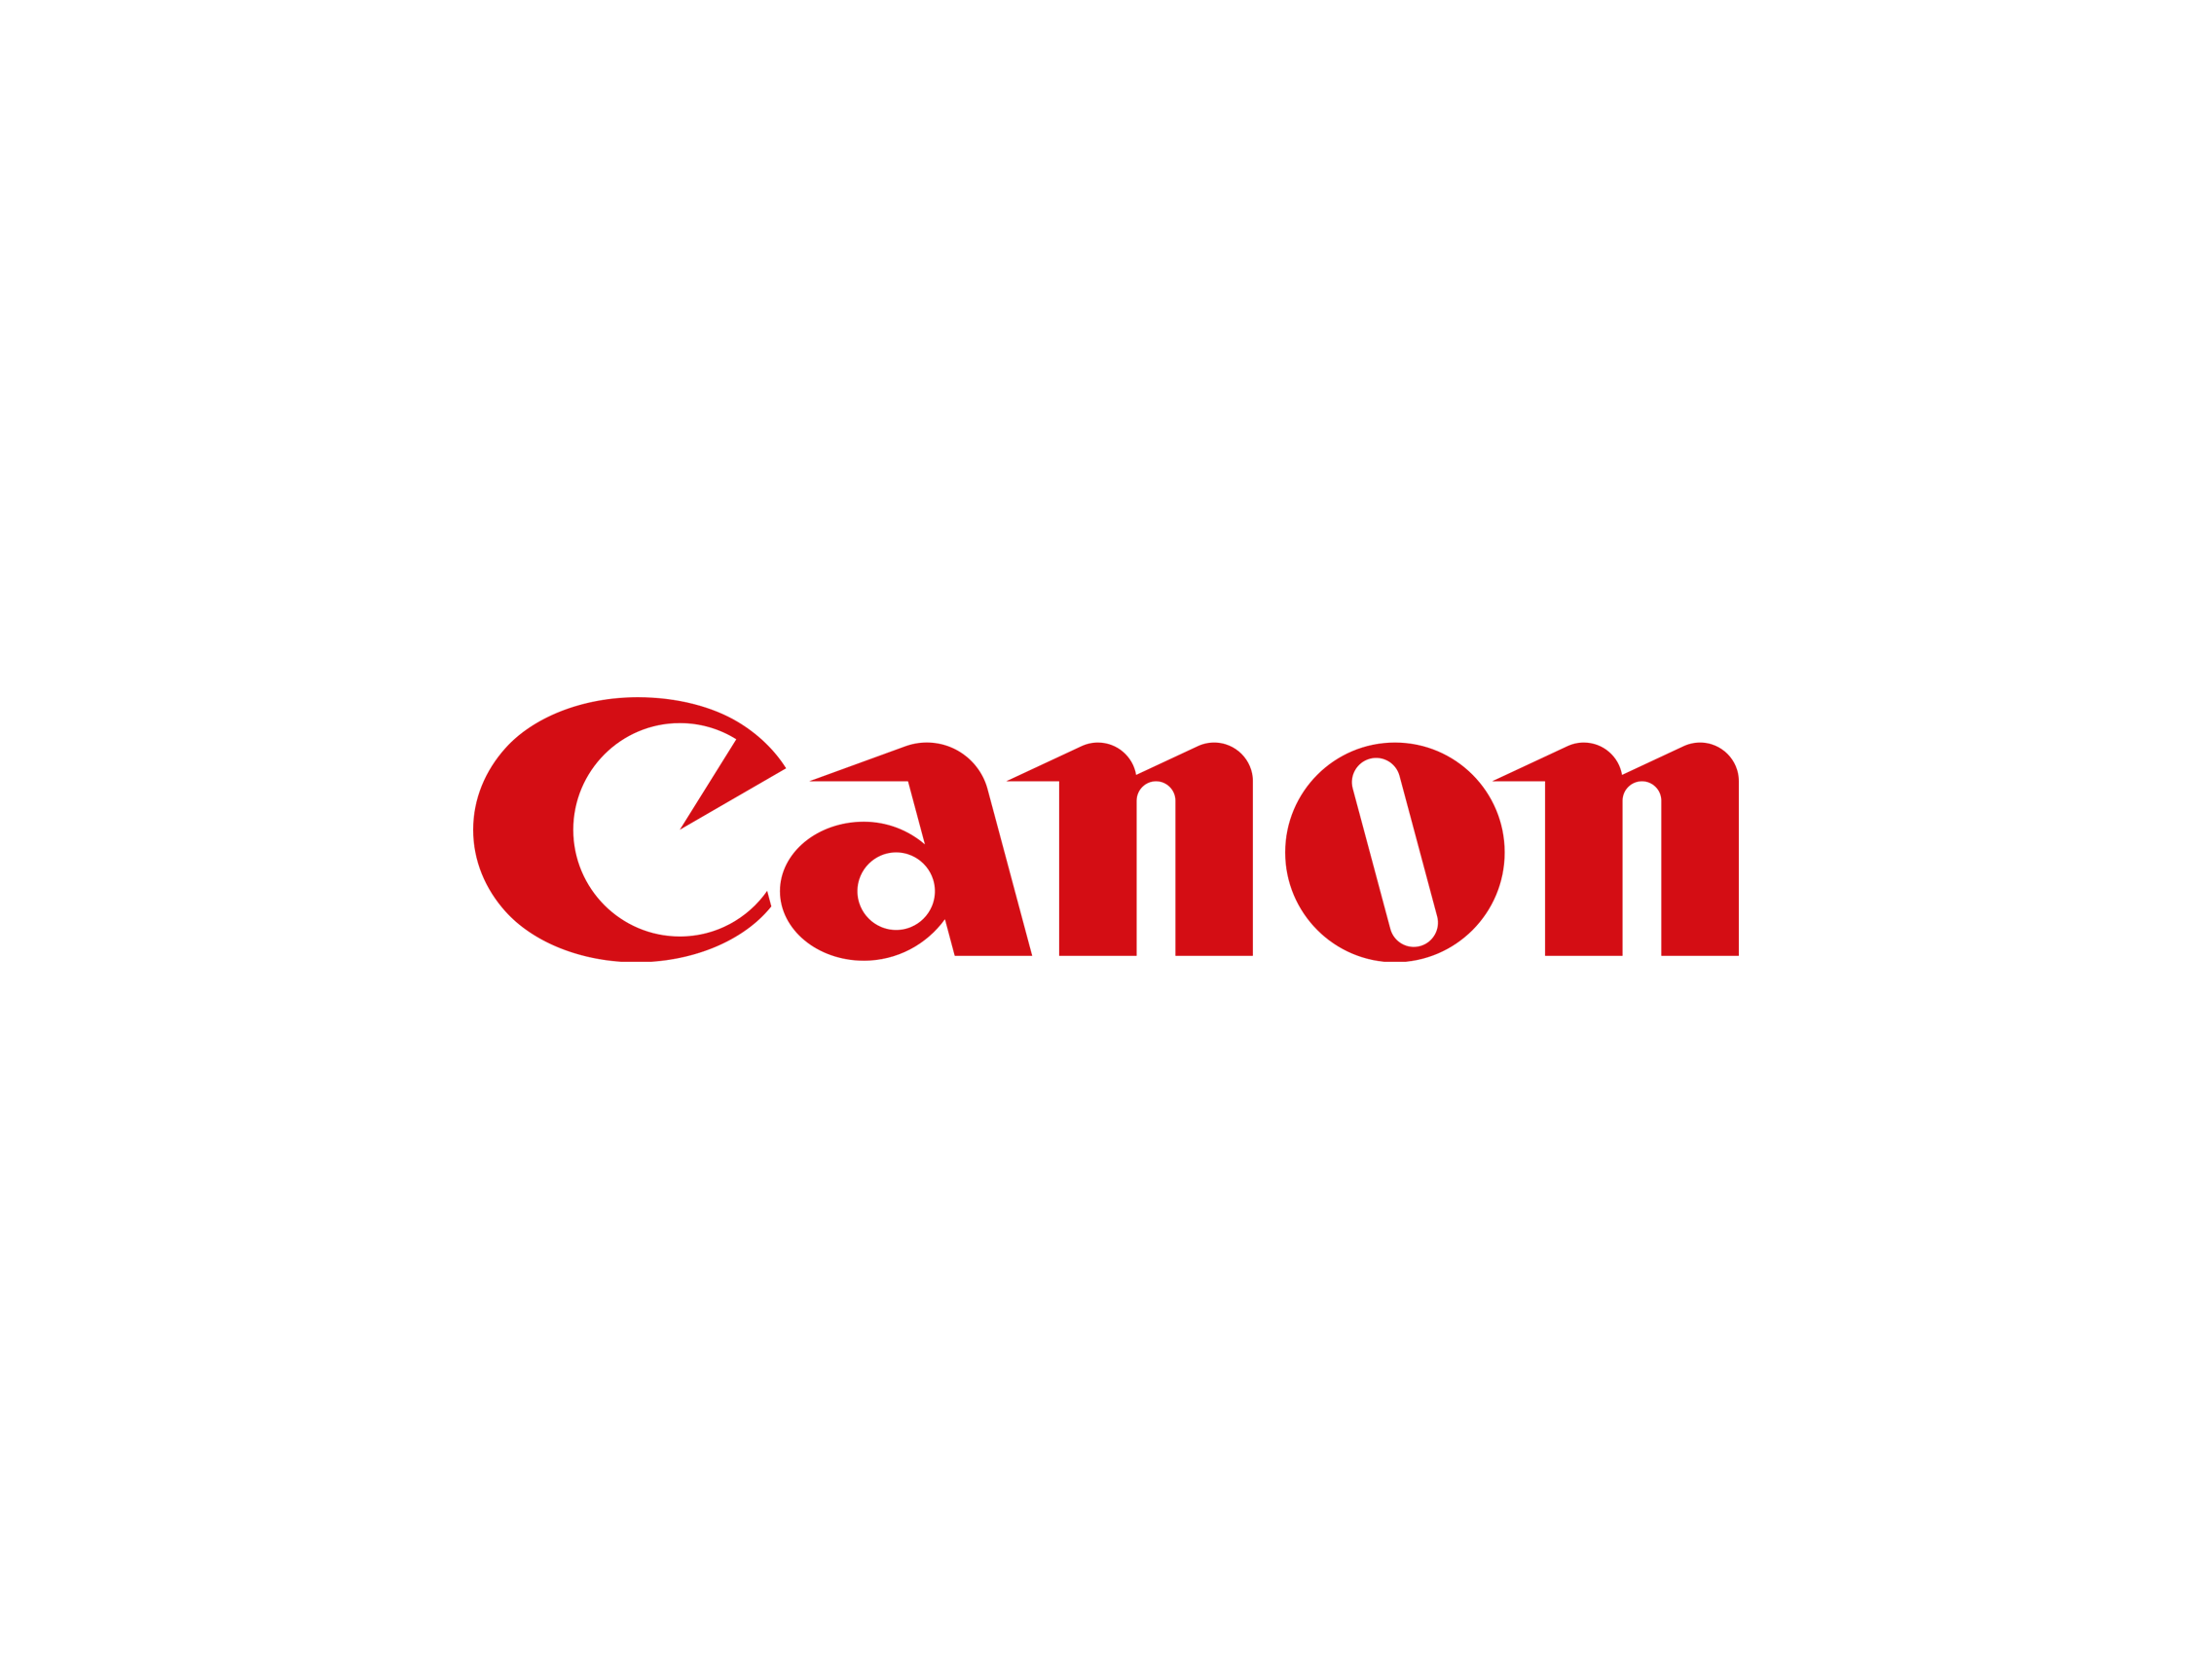 http://rozup.ir/view/1663324/Canon-logo-wordmark.png